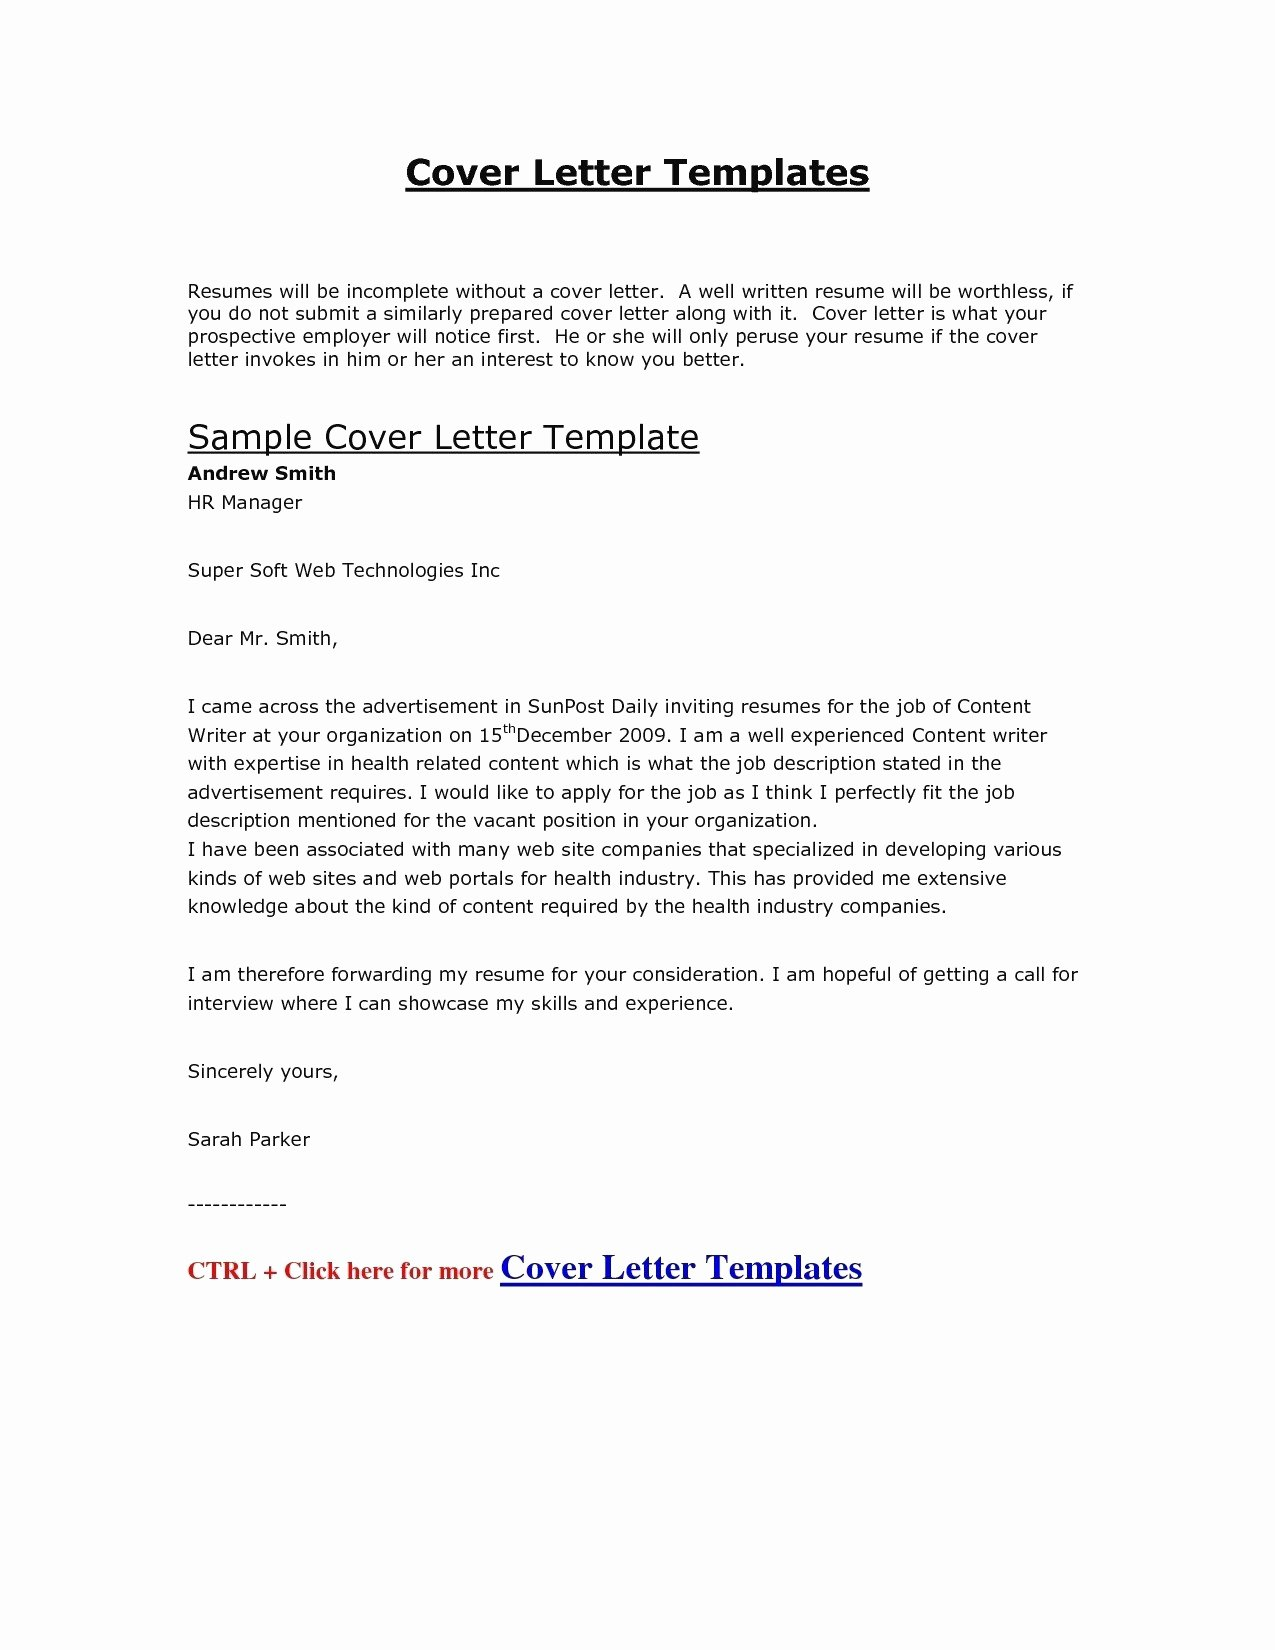 Insolvency Letter to Creditors Template New Relocation Cover Letter Template Free Samples